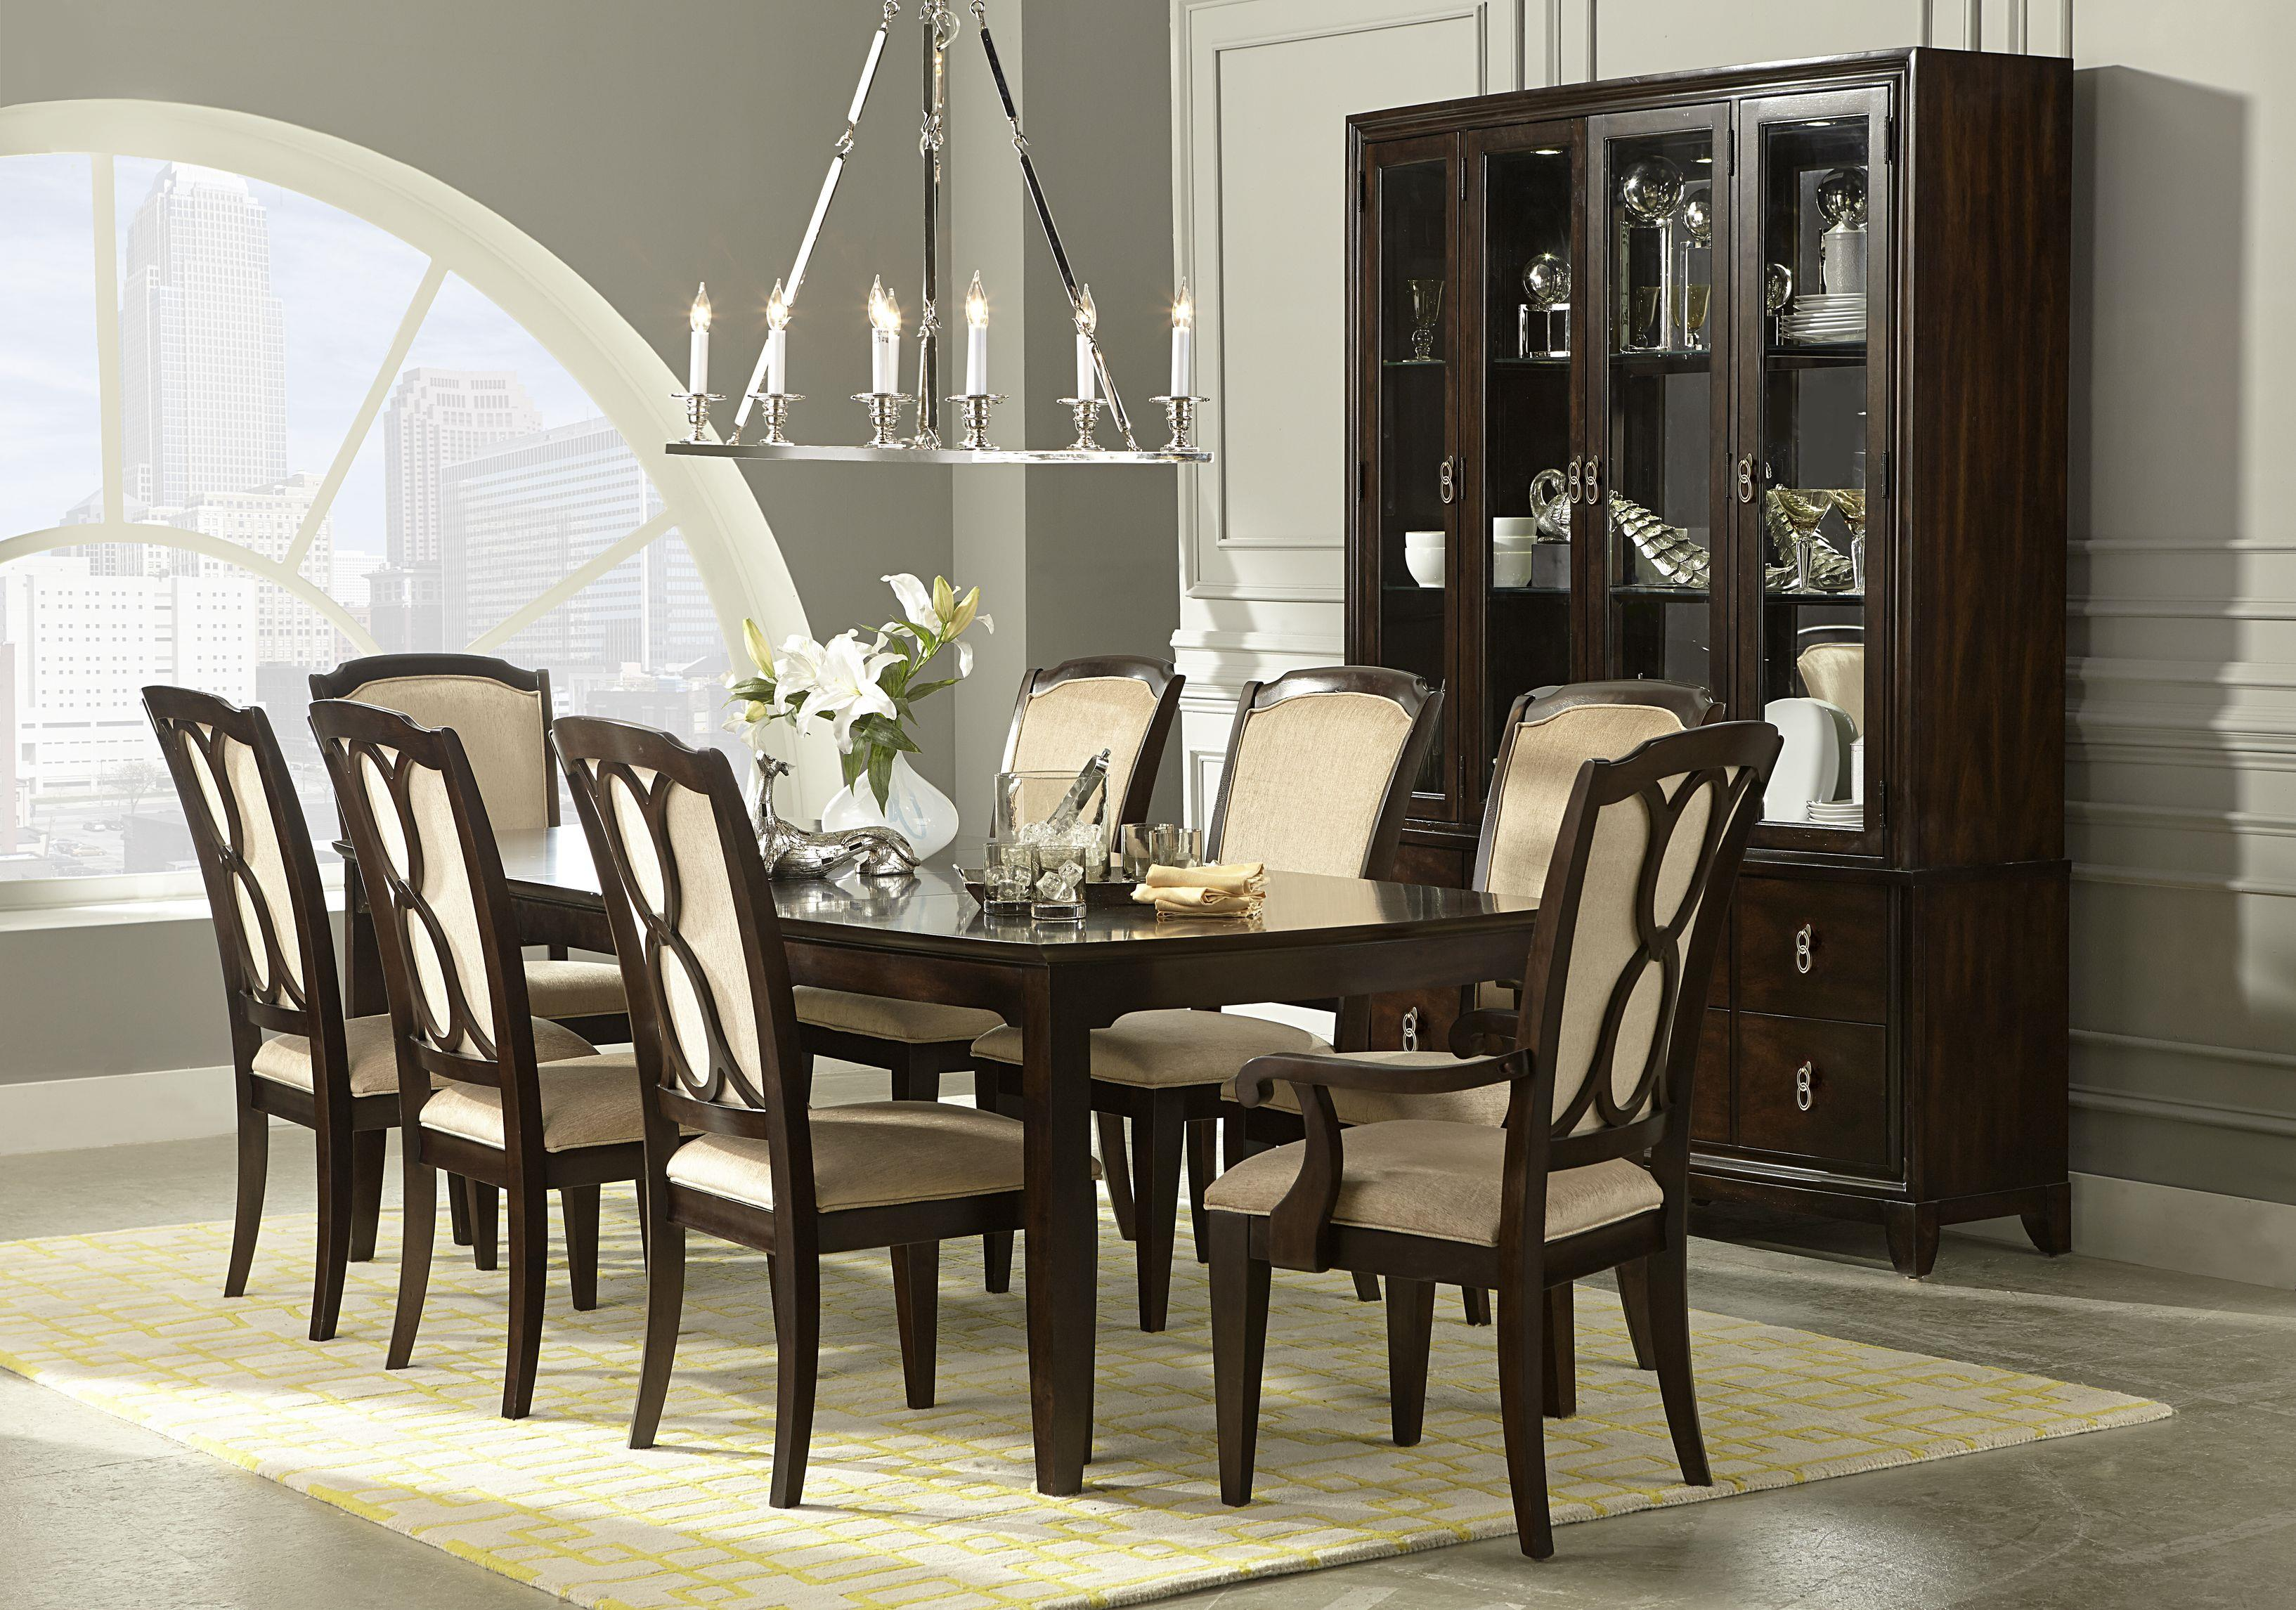 Legacy Classic Sophia Formal Dining Room Group - Item Number: 4450 Dining Room Group 1